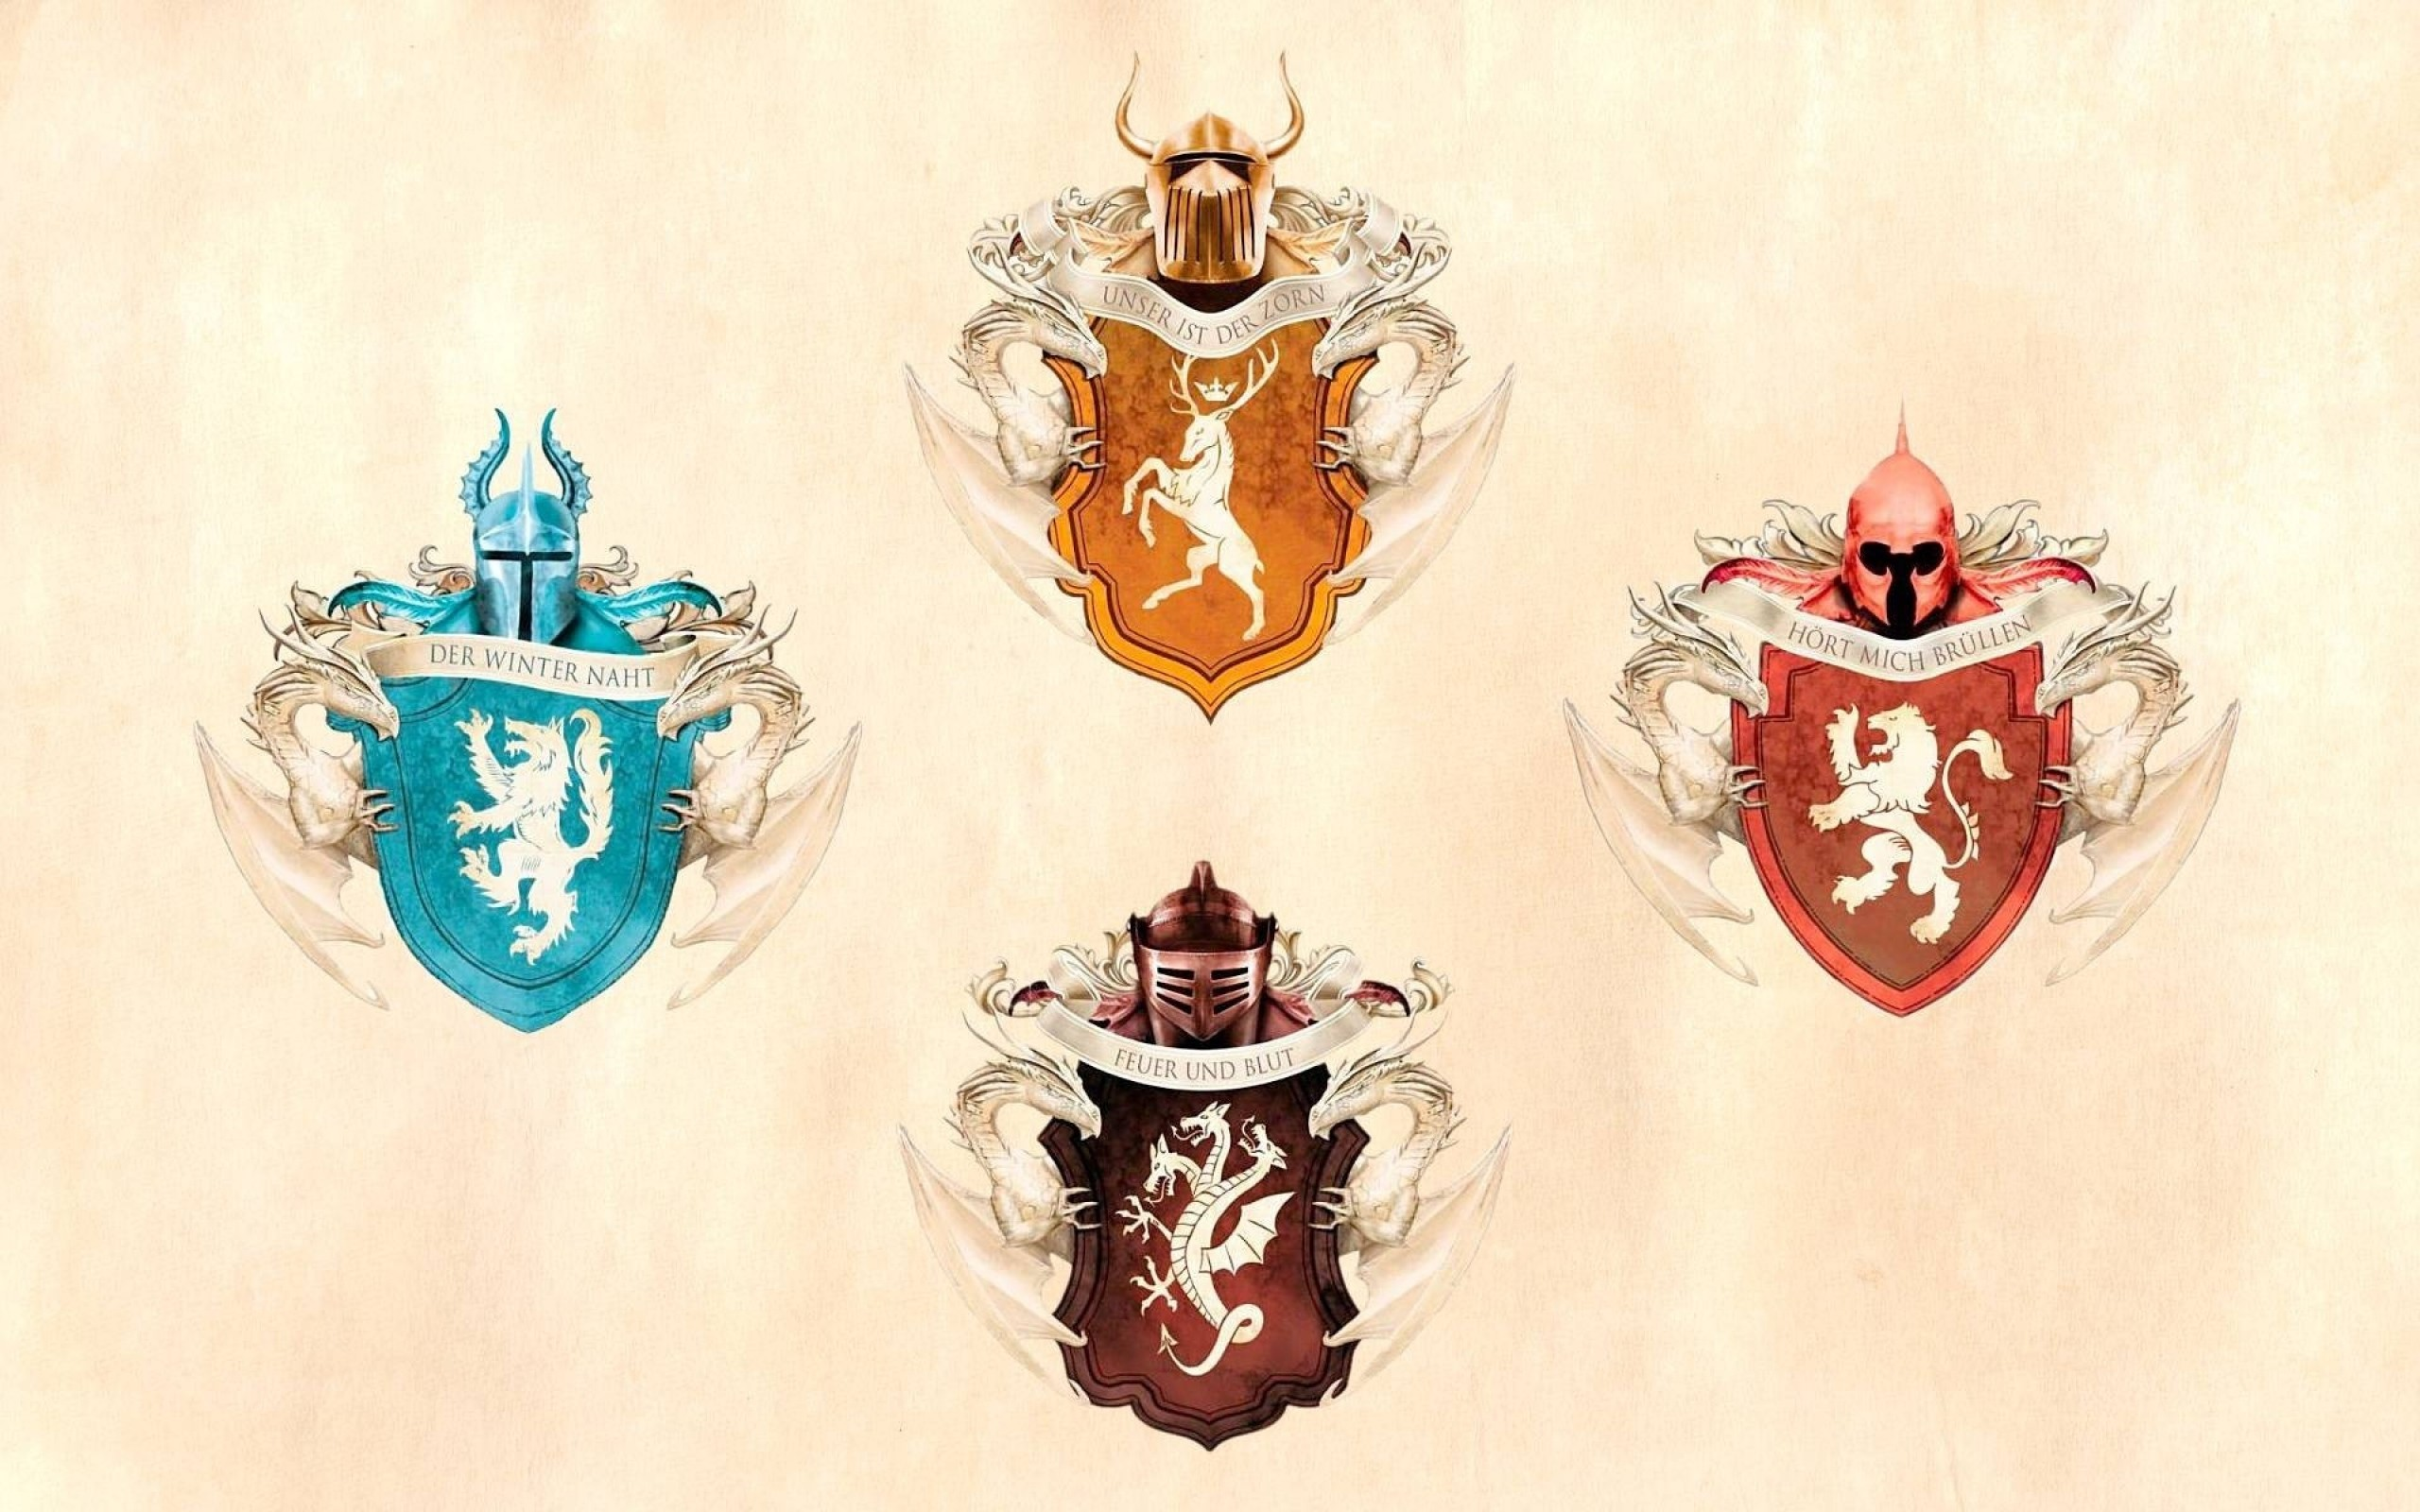 2560x1600  Wallpaper game of thrones, emblems, house stark, house targaryen,  house baratheon